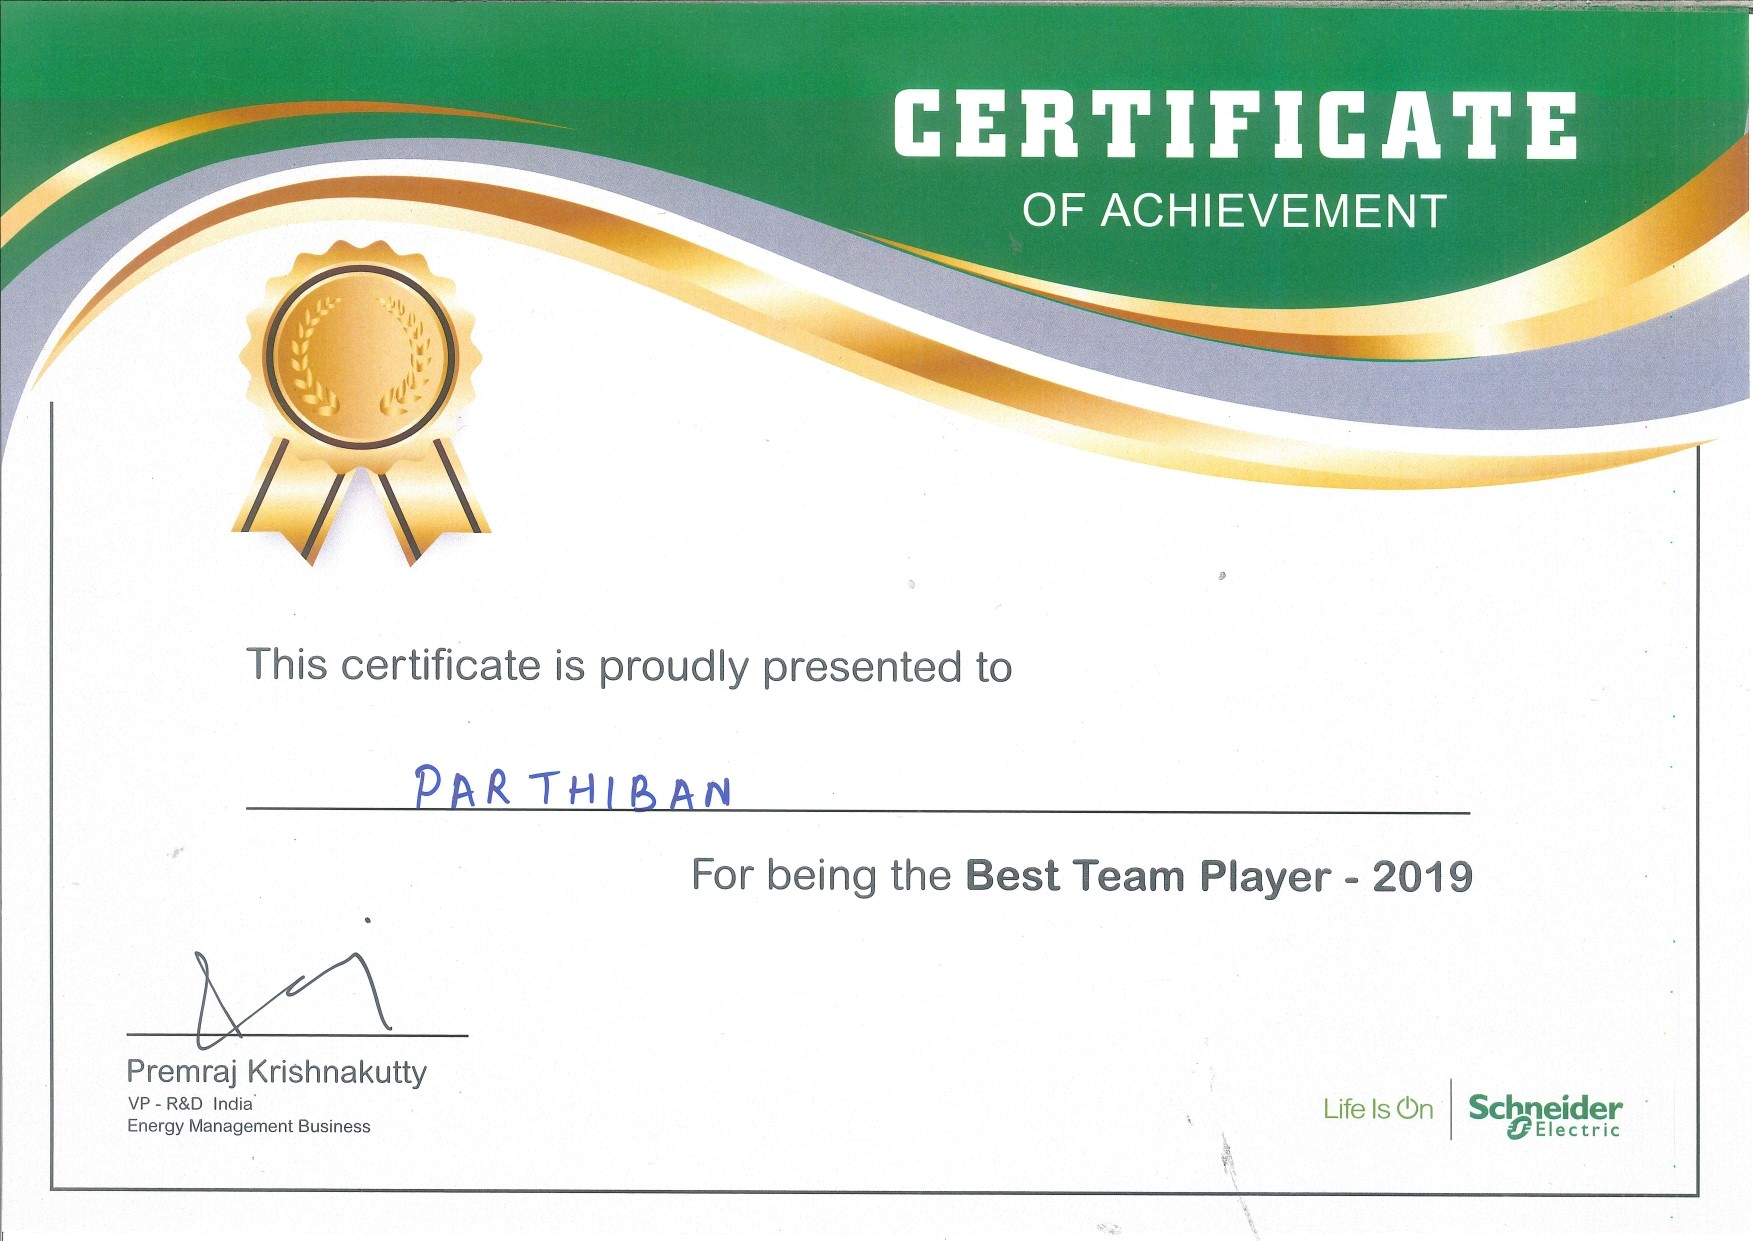 Best team player - 2019